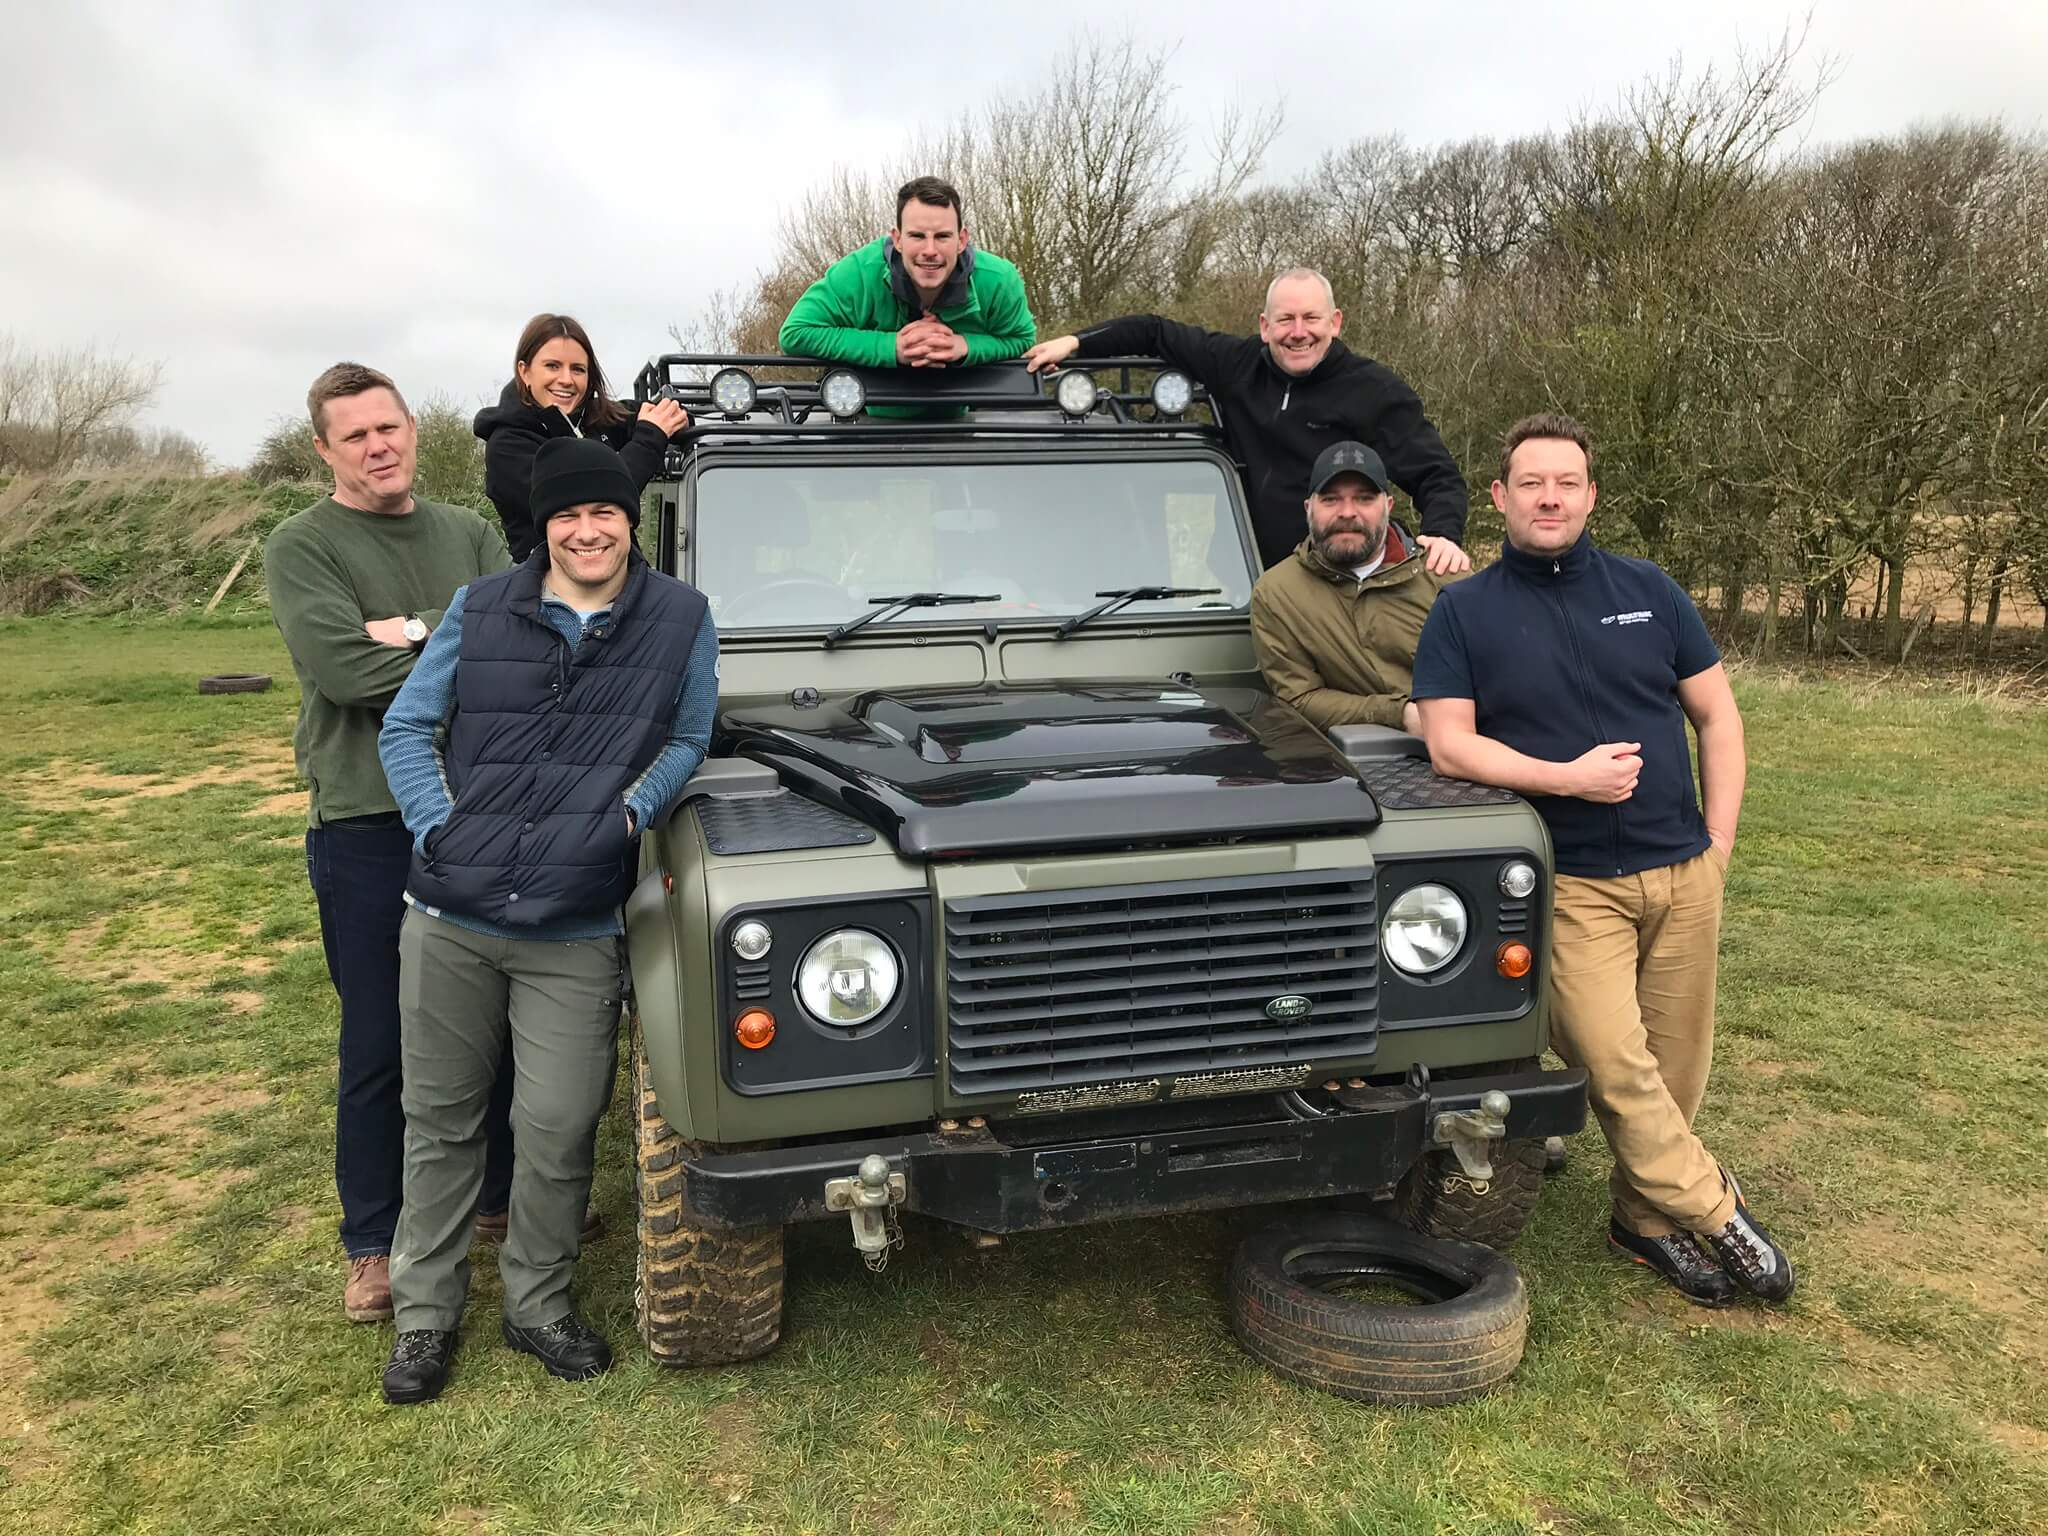 Everyone love to pose with our Landy